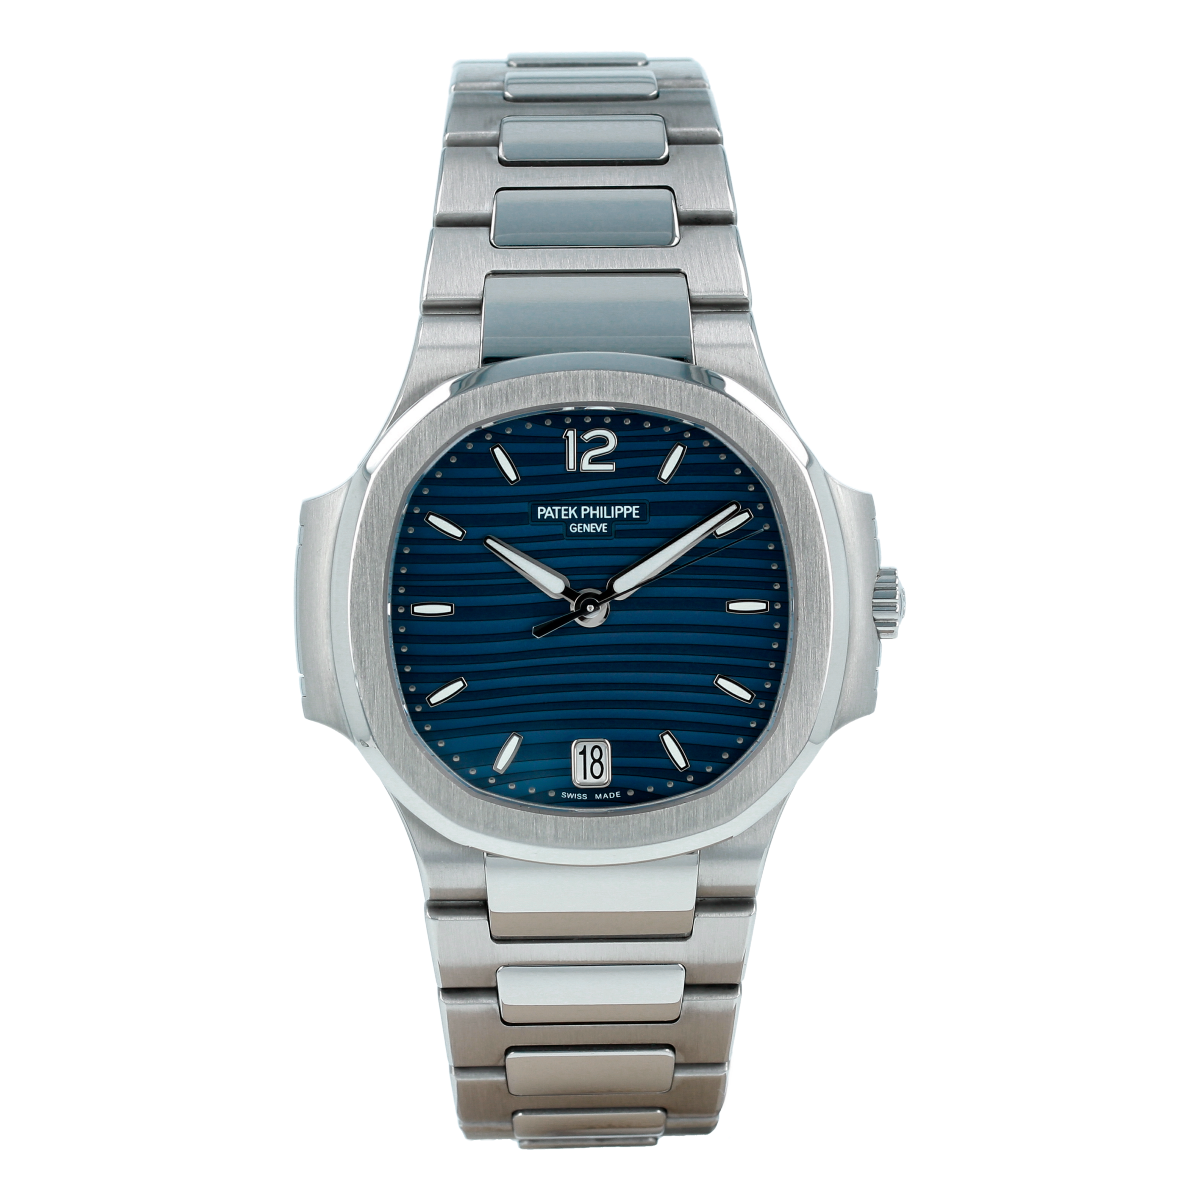 Patek Philippe Ladies' Nautilus 7118 Blue Dial | Buy pre-owned Patek Philippe watch